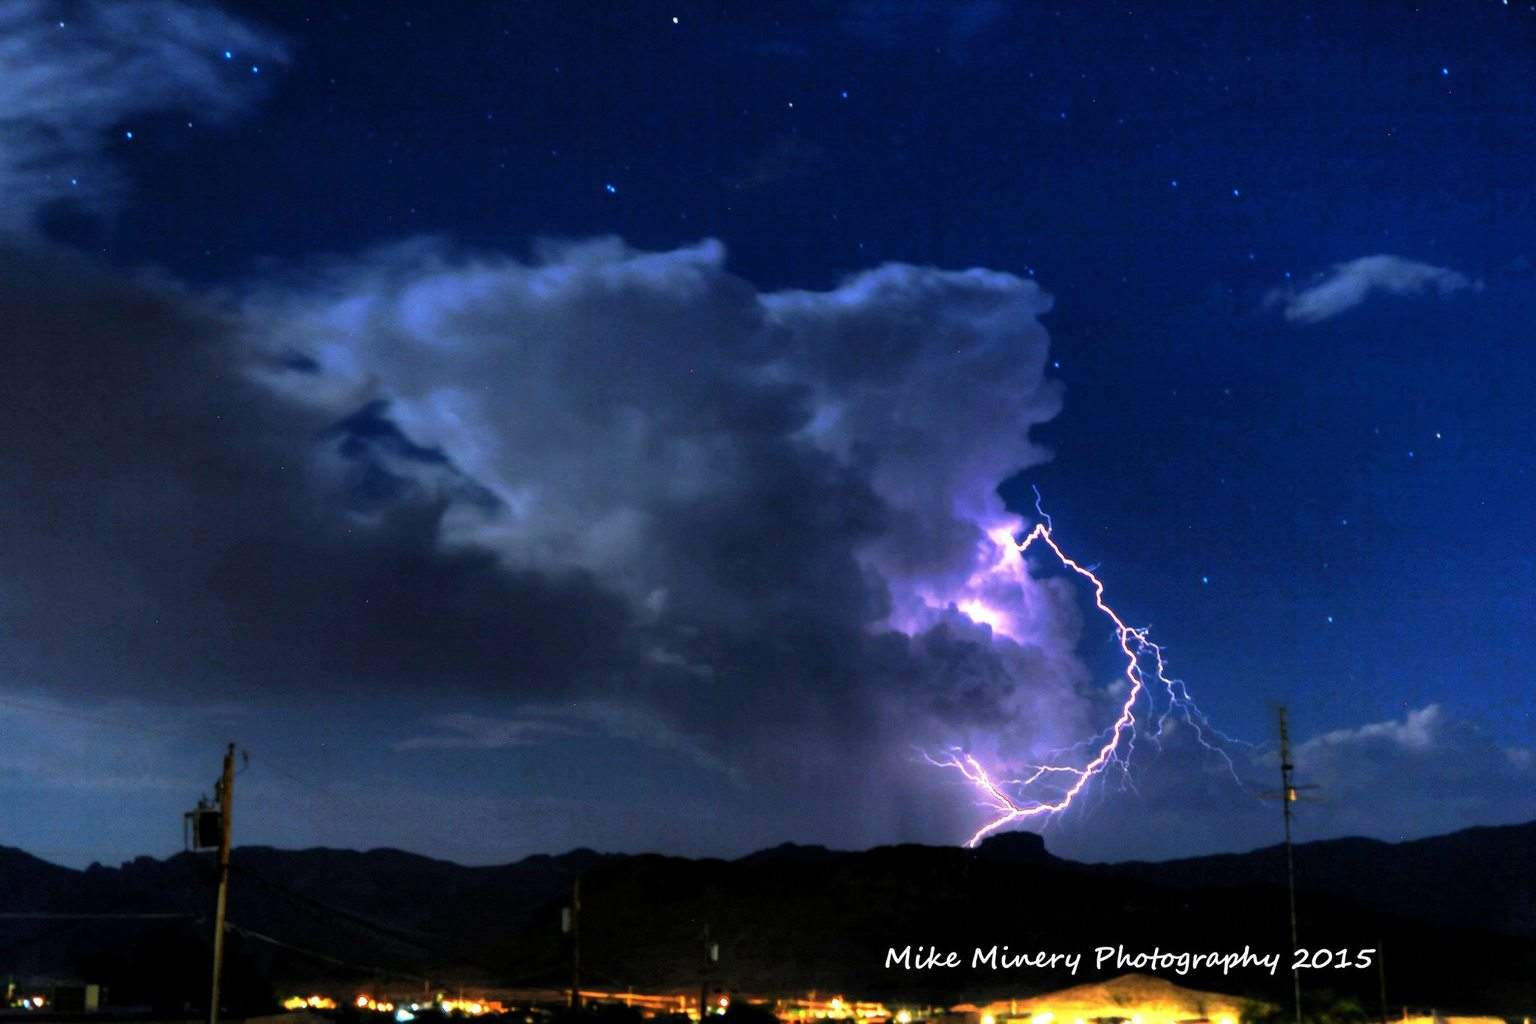 Maybe one of the most strangest lightning bolts I have ever captured. The bolt literally blew out of the side of this cumulus cloud went around it then nailed the ground. It was so cool! This is looking directly at cup cake mountain on the CA side of Lake Havasu, AZ. Photo was taken by me on the south side of town. Photo credit - Mike Minery